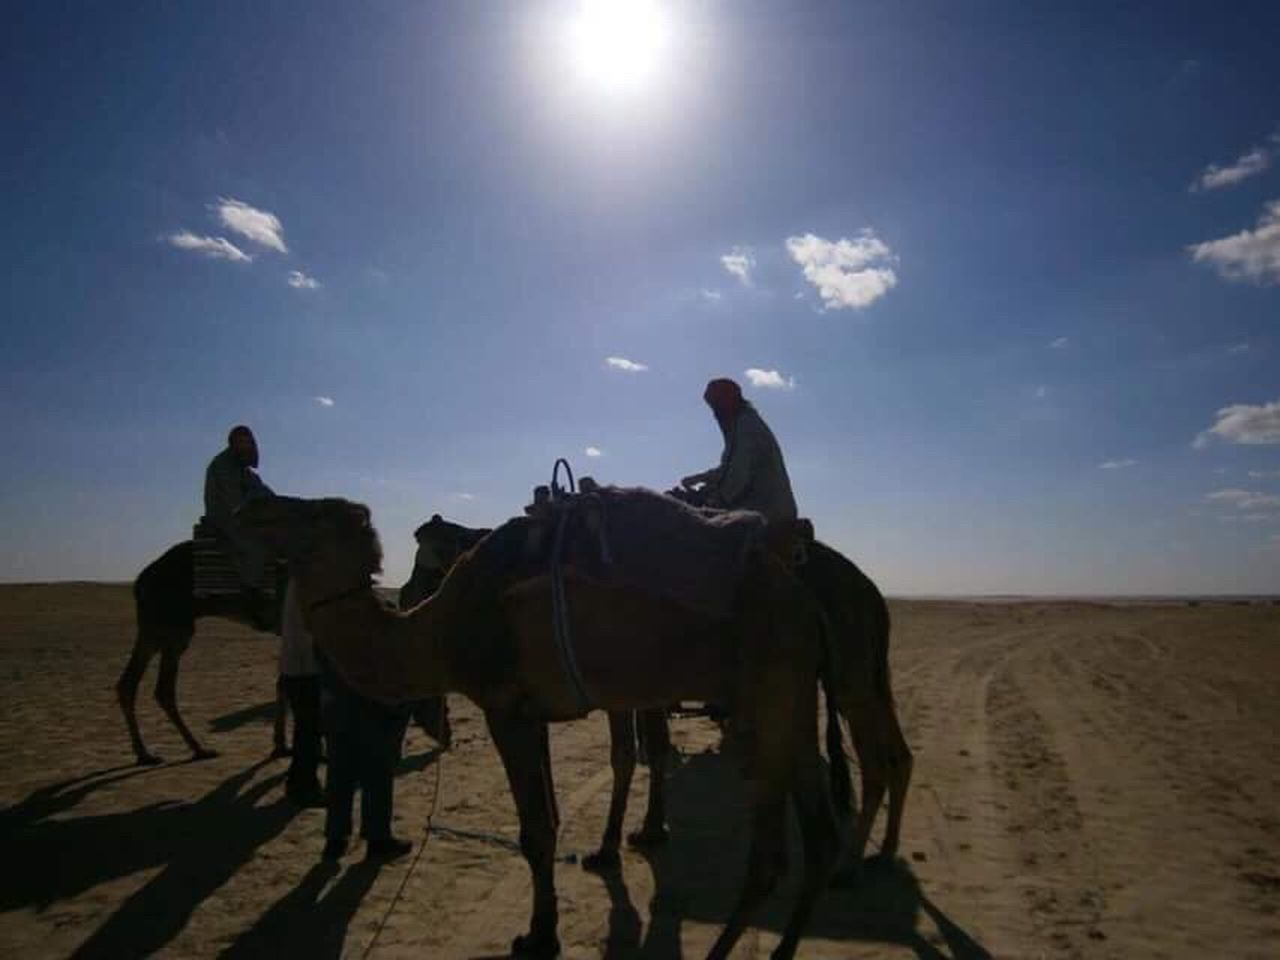 Horse Side View Sky Desert Domestic Animals Riding People Outdoors Motion Working Animal Animal Themes Sand Adults Only Adult Sun Mammal Nature Cowboy Hat Camel Light Desert Desert Beauty Cultures Tunisia Oriental